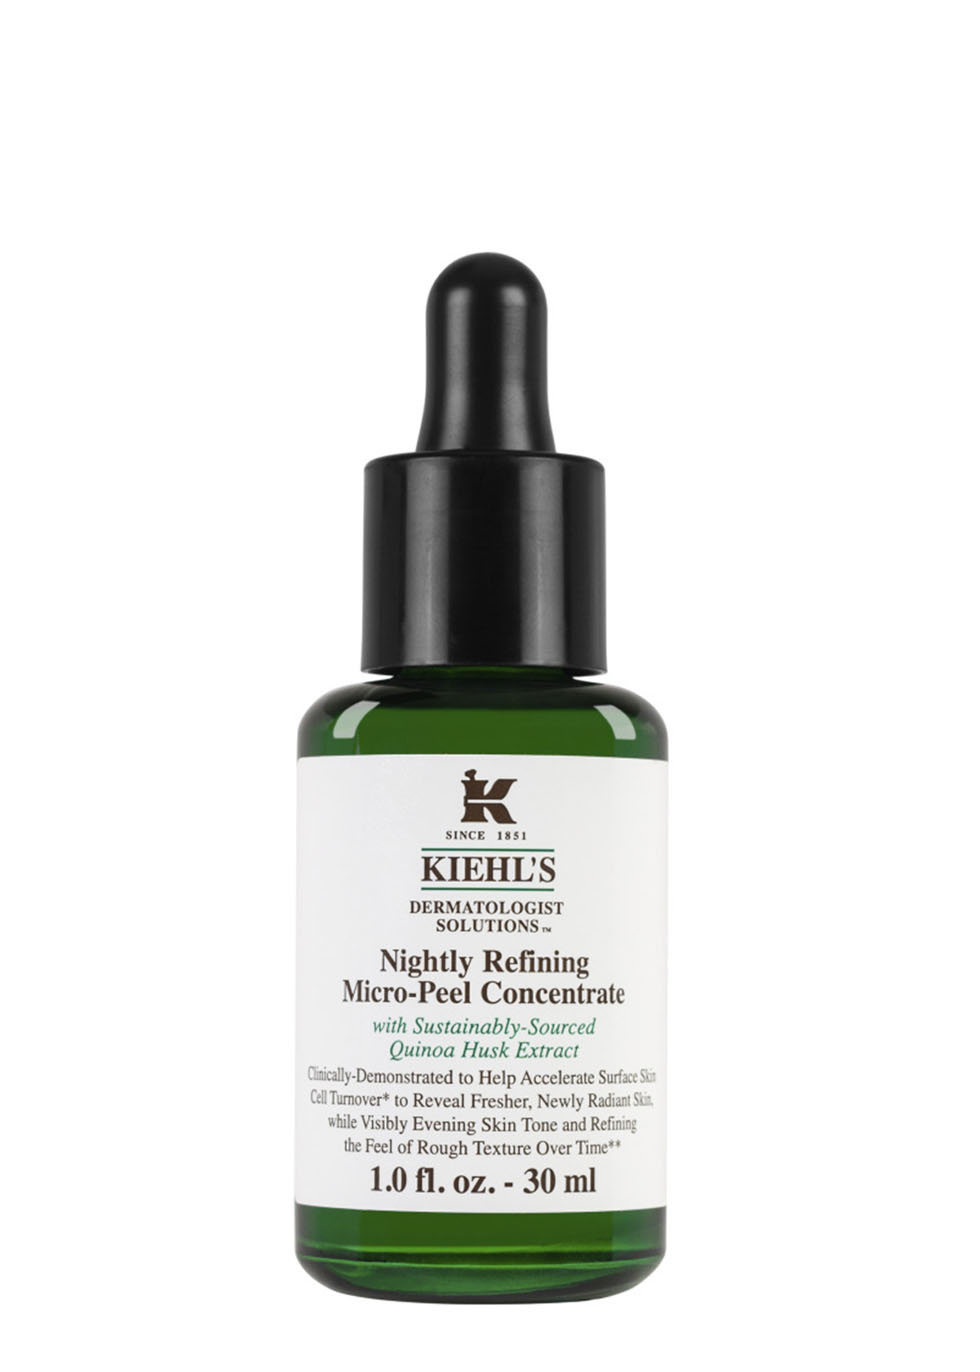 Nightly Refining Micro-Peel Concentrate 30ml